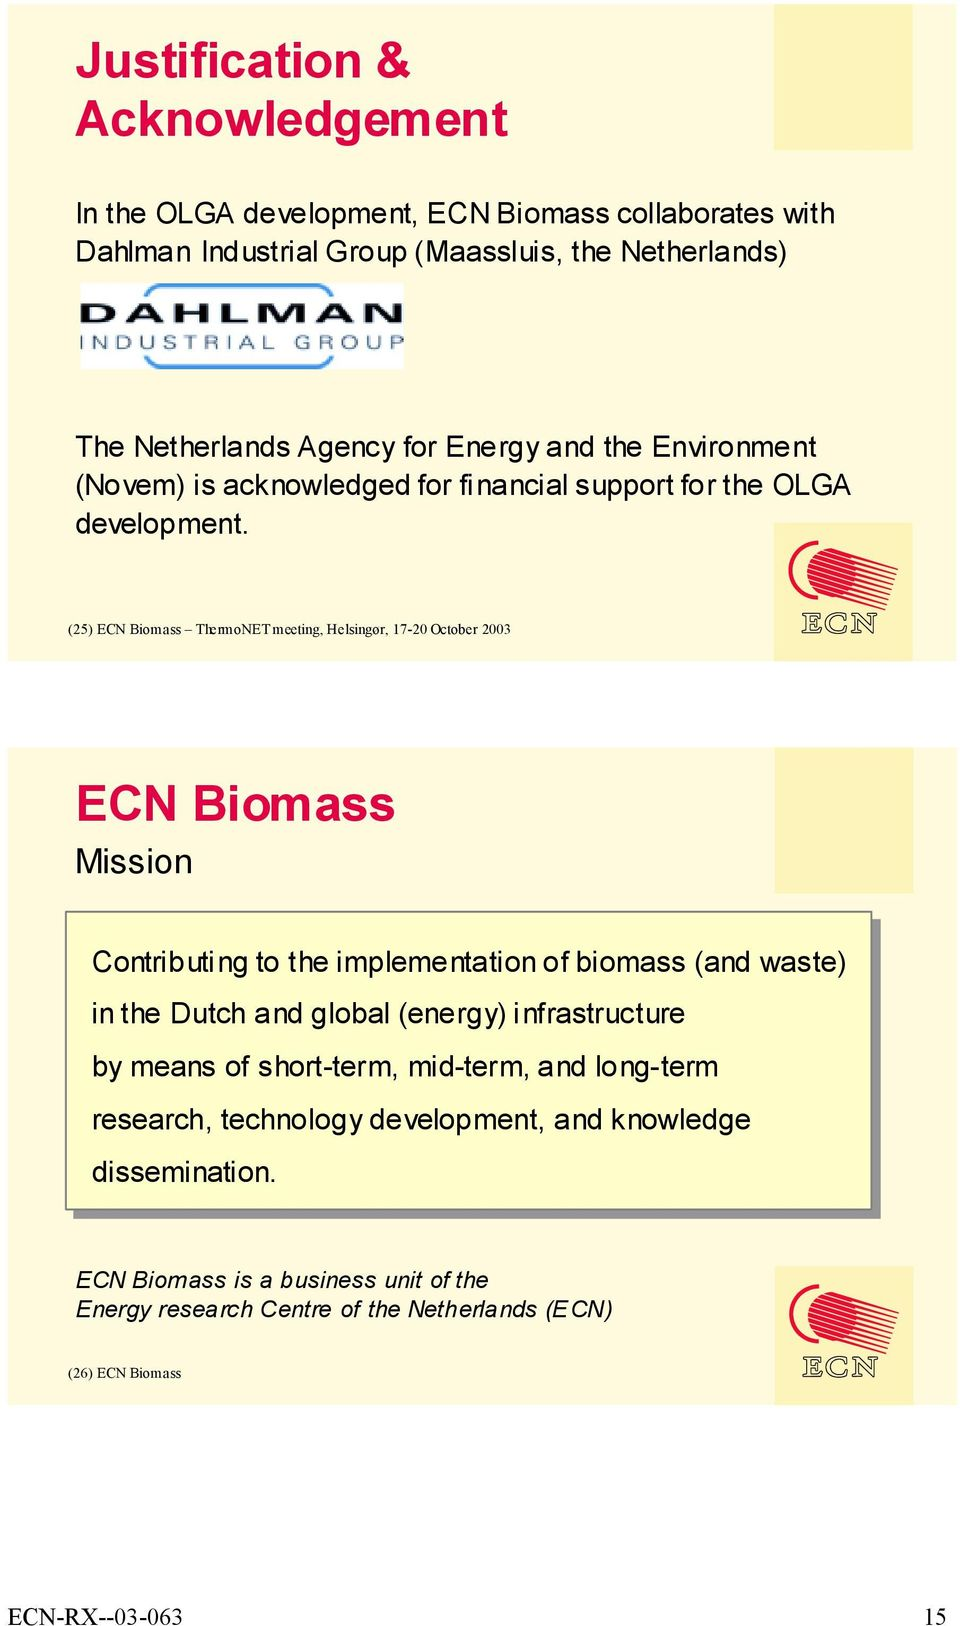 (25) ECN Biomass ThermoNET meeting, Helsingør, 17-20 October 200 ECN Biomass Mission Contributing to to the implementation of of biomass (and waste) in in the Dutch and global